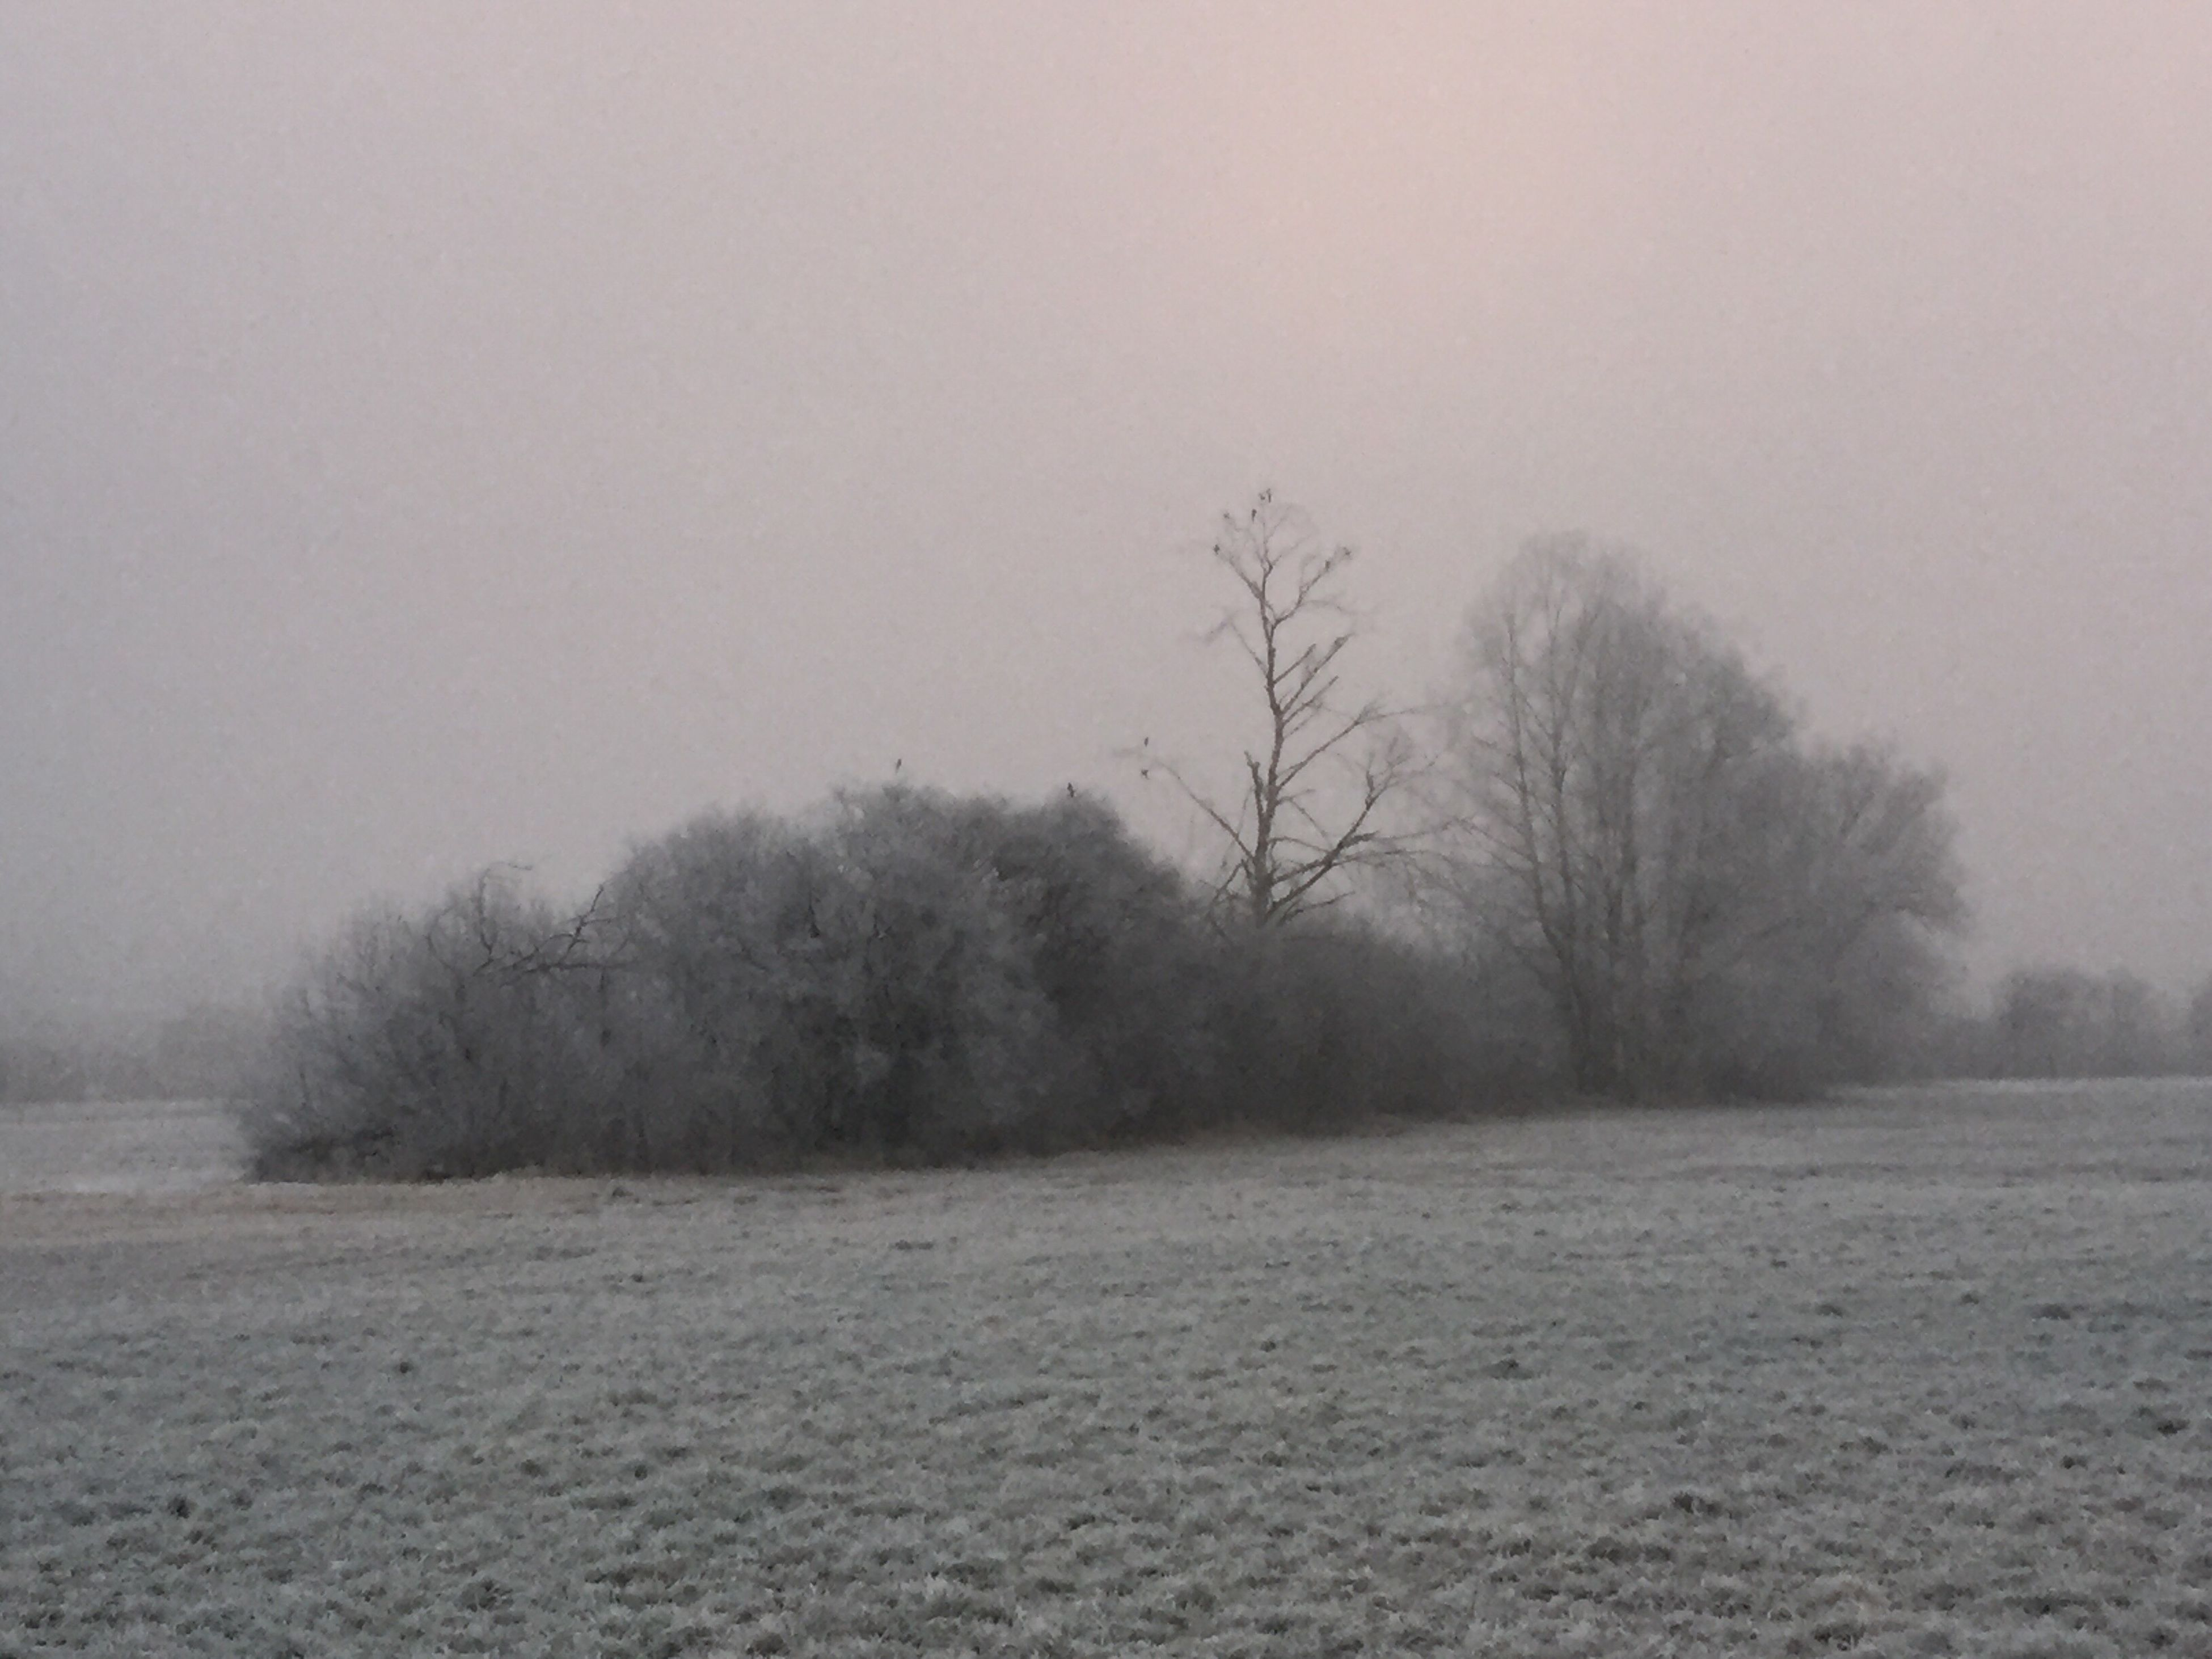 tree, tranquility, tranquil scene, bare tree, fog, landscape, scenics, foggy, nature, beauty in nature, weather, field, sky, copy space, non-urban scene, branch, outdoors, remote, no people